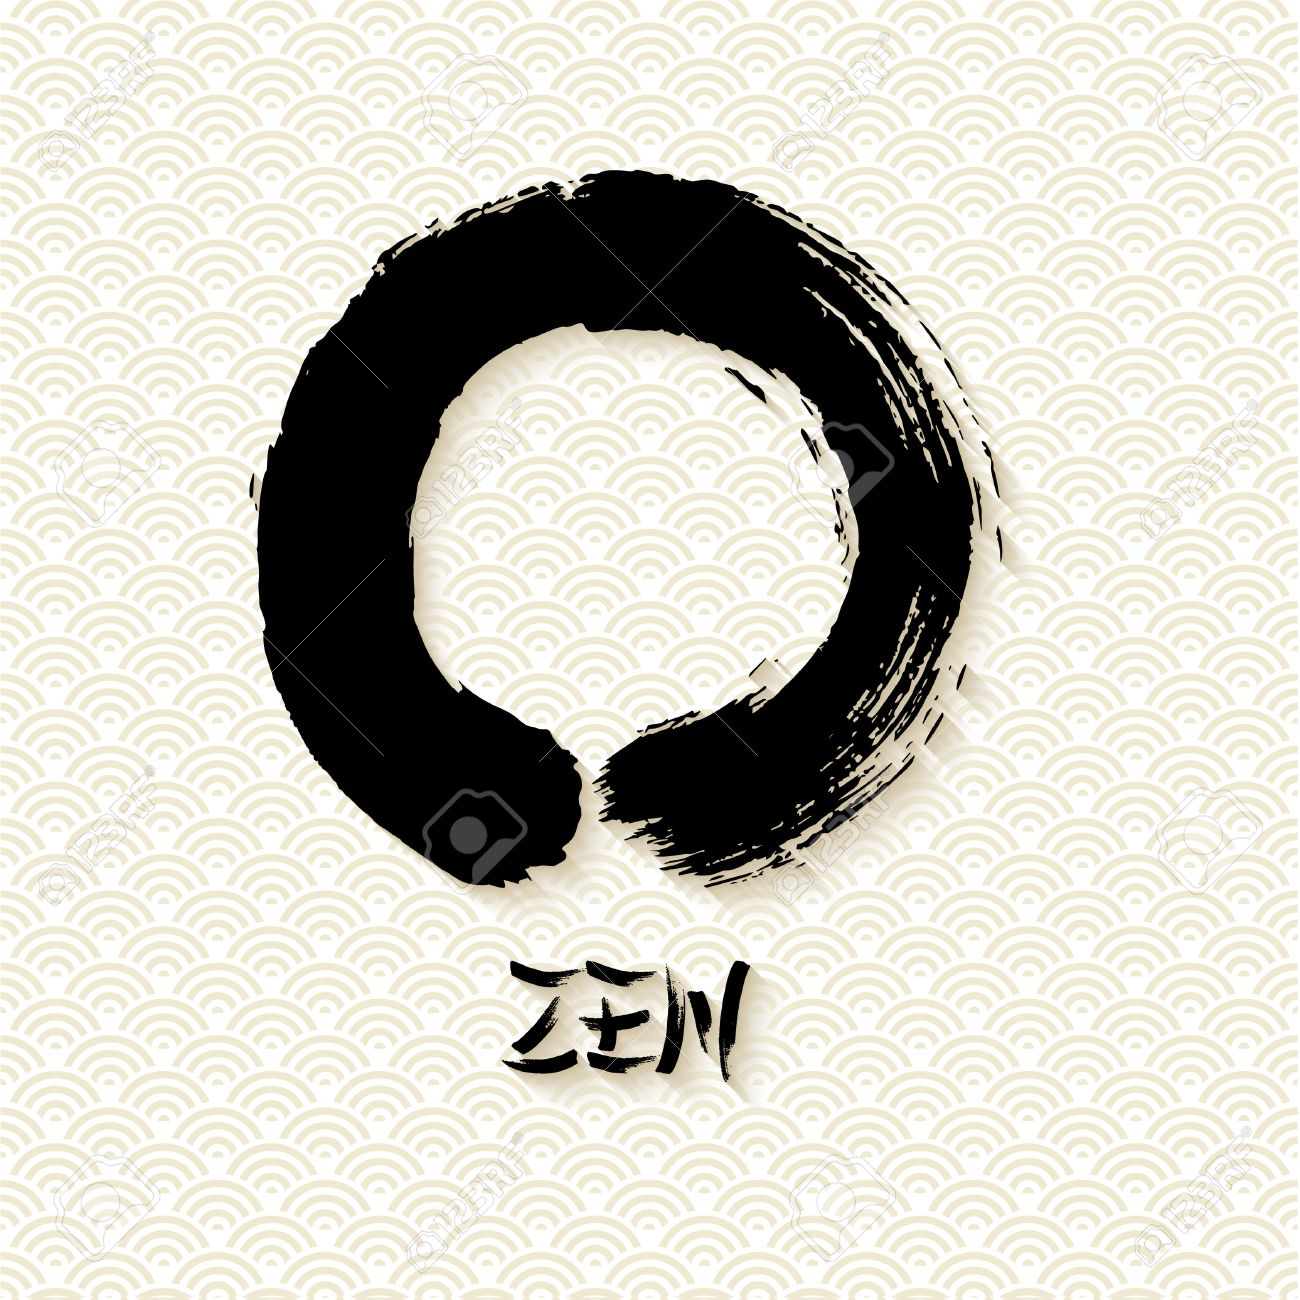 Enso zen circle illustration in traditional hand drawn brush enso zen circle illustration in traditional hand drawn brush stroke style meditation symbol of buddhism biocorpaavc